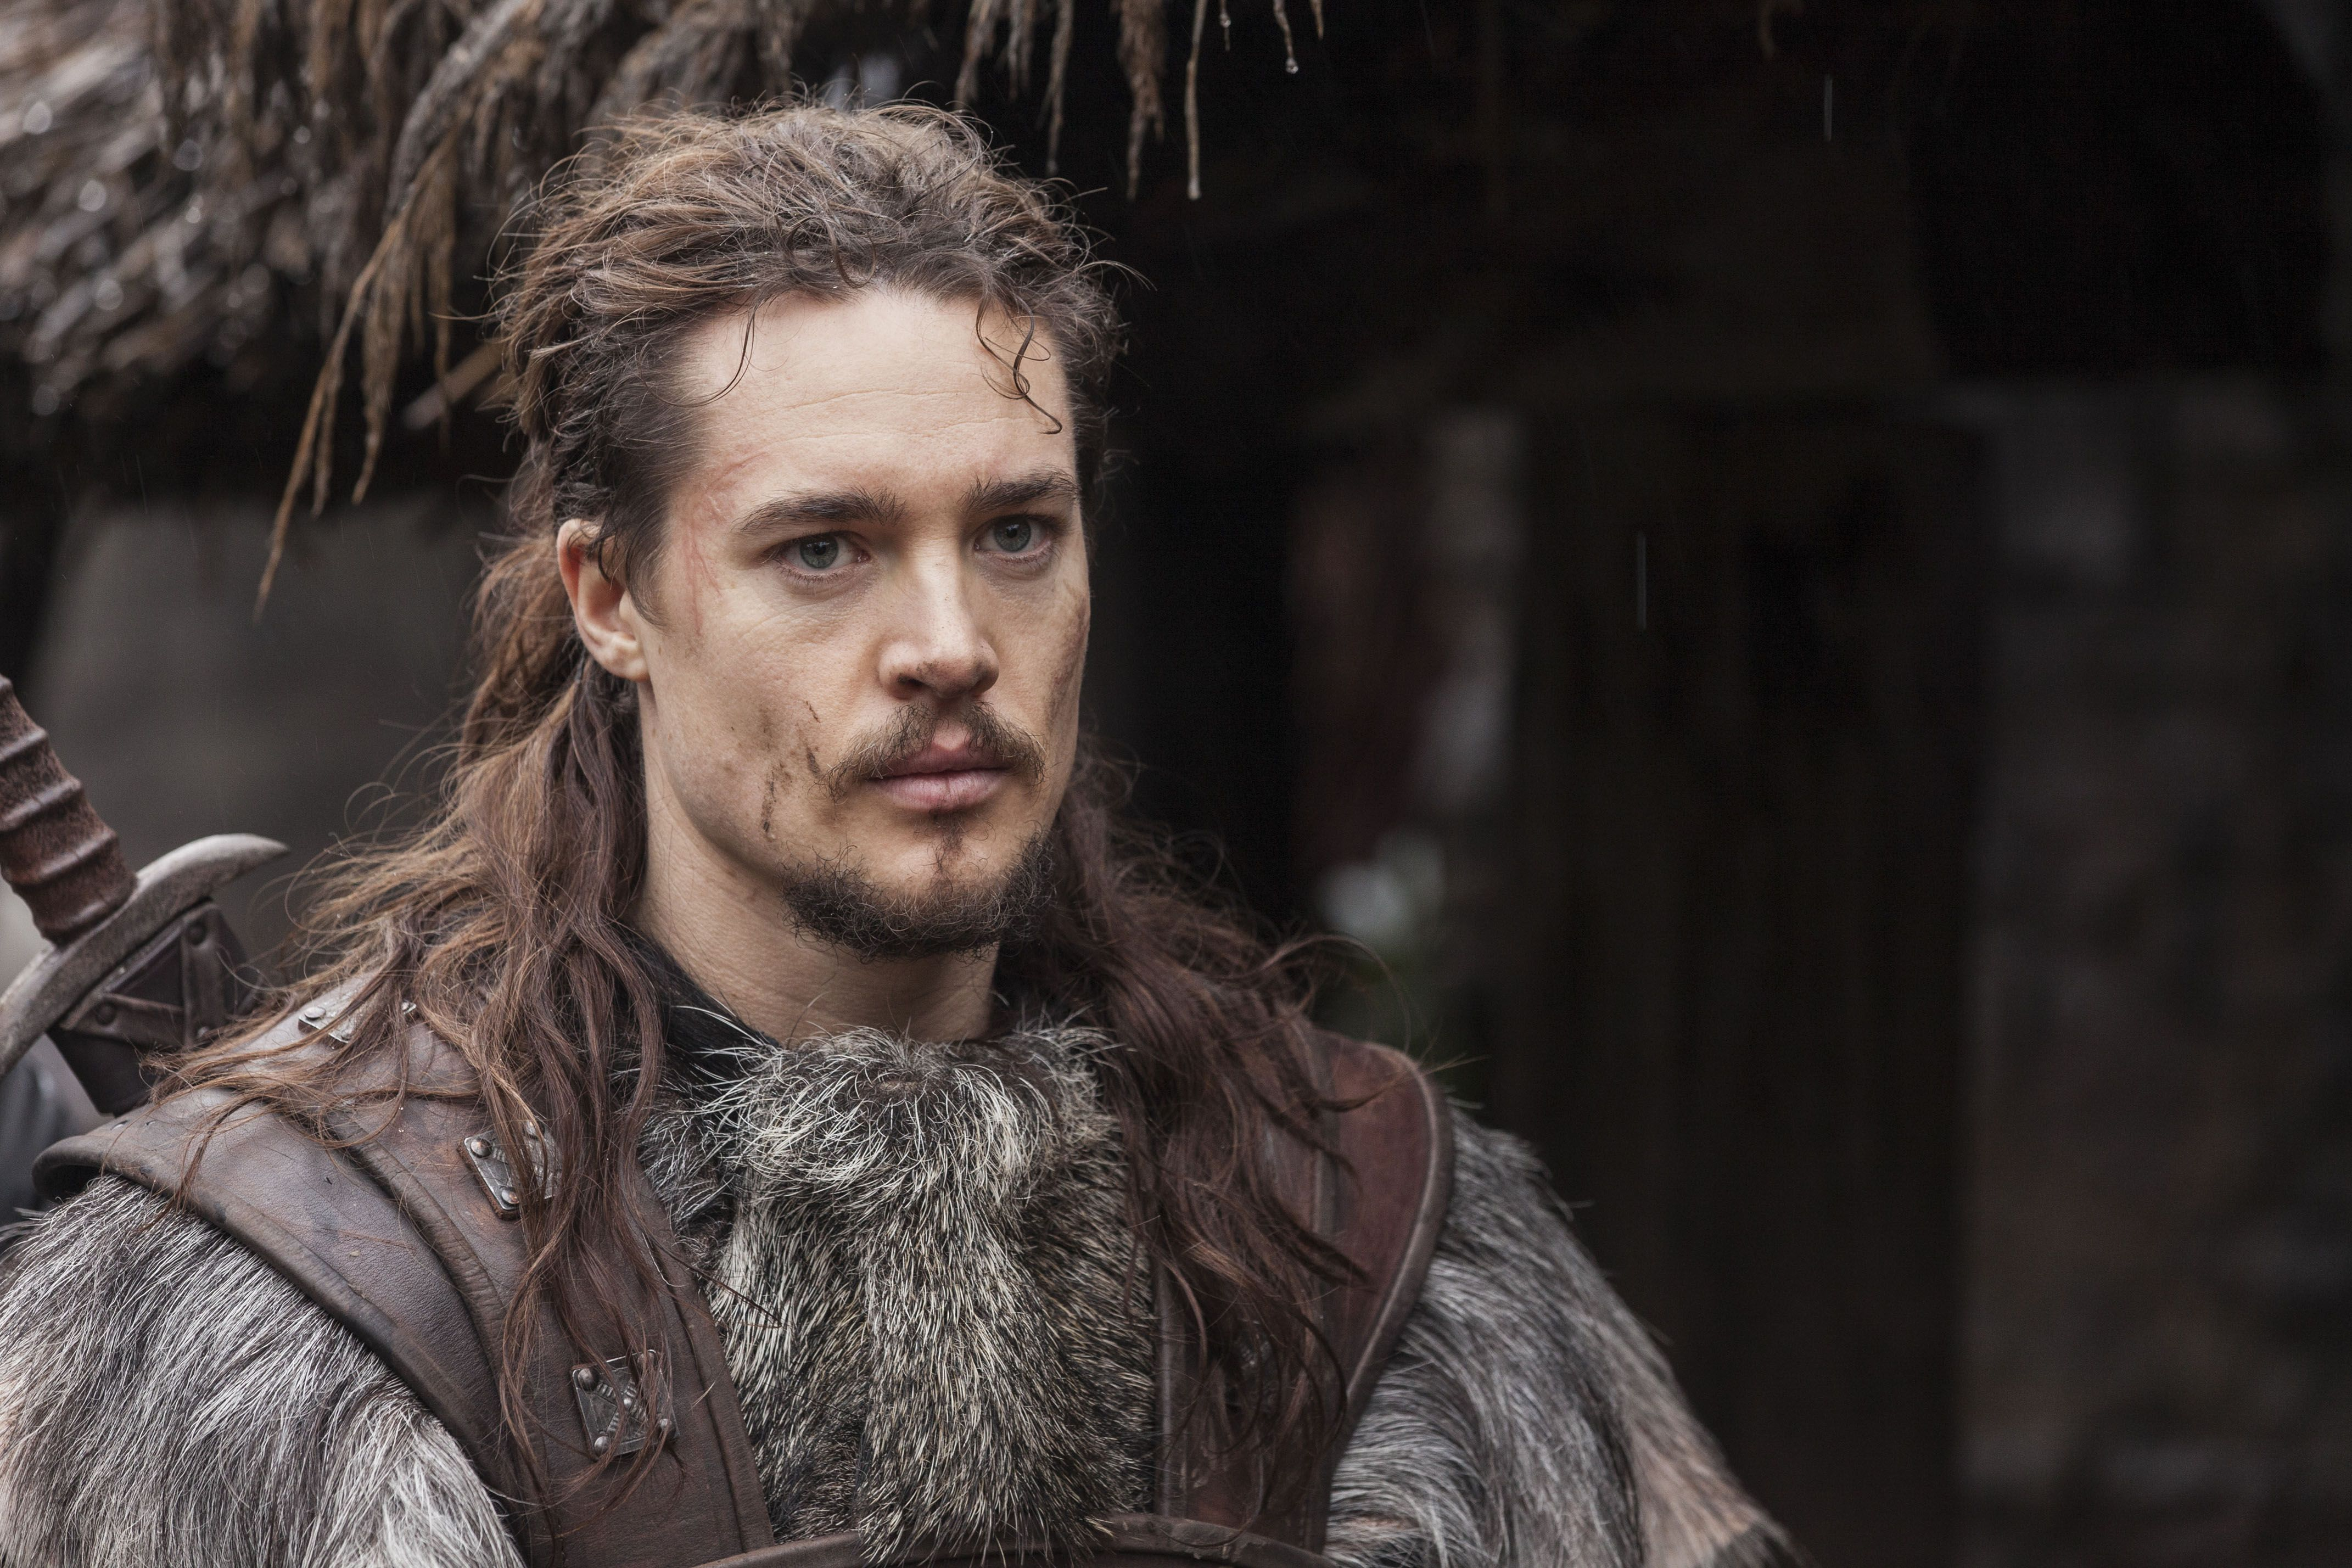 alexander dreymon 2017alexander dreymon instagram, alexander dreymon the last kingdom, alexander dreymon 2017, alexander dreymon 2016, alexander dreymon american horror story, alexander dreymon wdw, alexander dreymon photos, alexander dreymon films, alexander dreymon tumblr, alexander dreymon interview, alexander dreymon workout routine, alexander dreymon and wife, alexander dreymon, alexander dreymon wiki, alexander dreymon bio, alexander dreymon wikipedia, alexander dreymon nationality, alexander dreymon biography, alexander dreymon twitter, alexander dreymon height